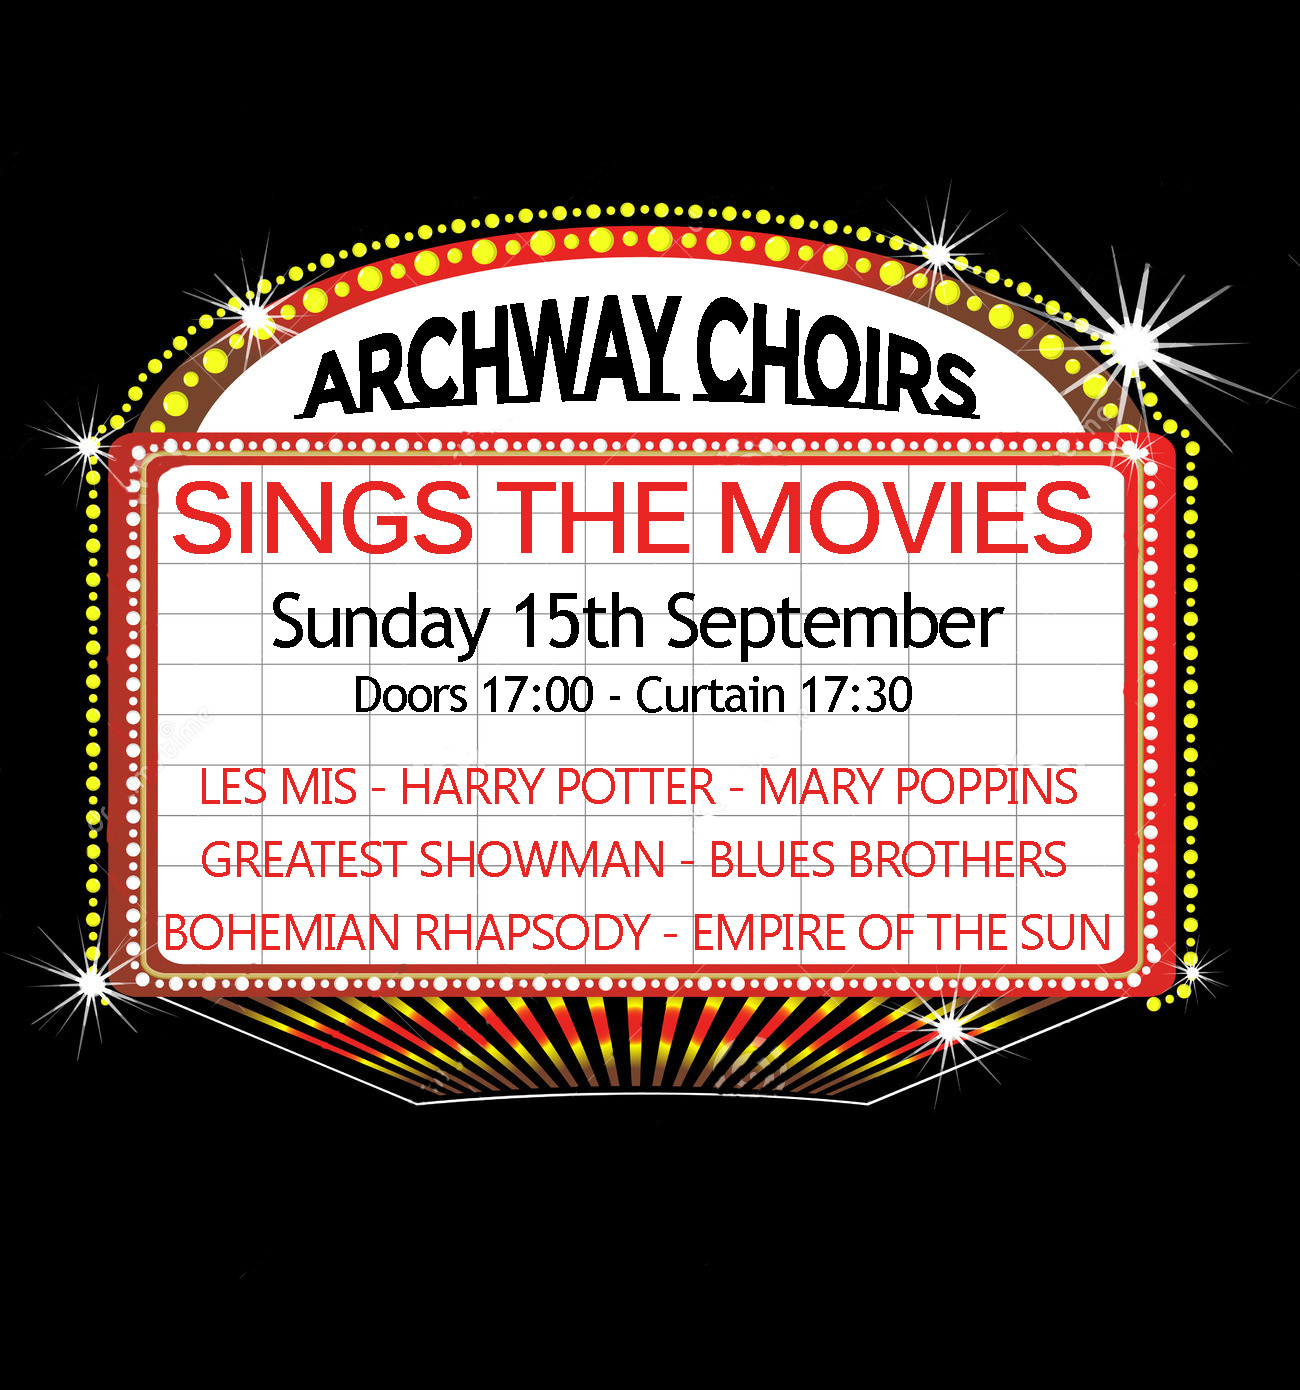 Archway Choirs Sing the Movies